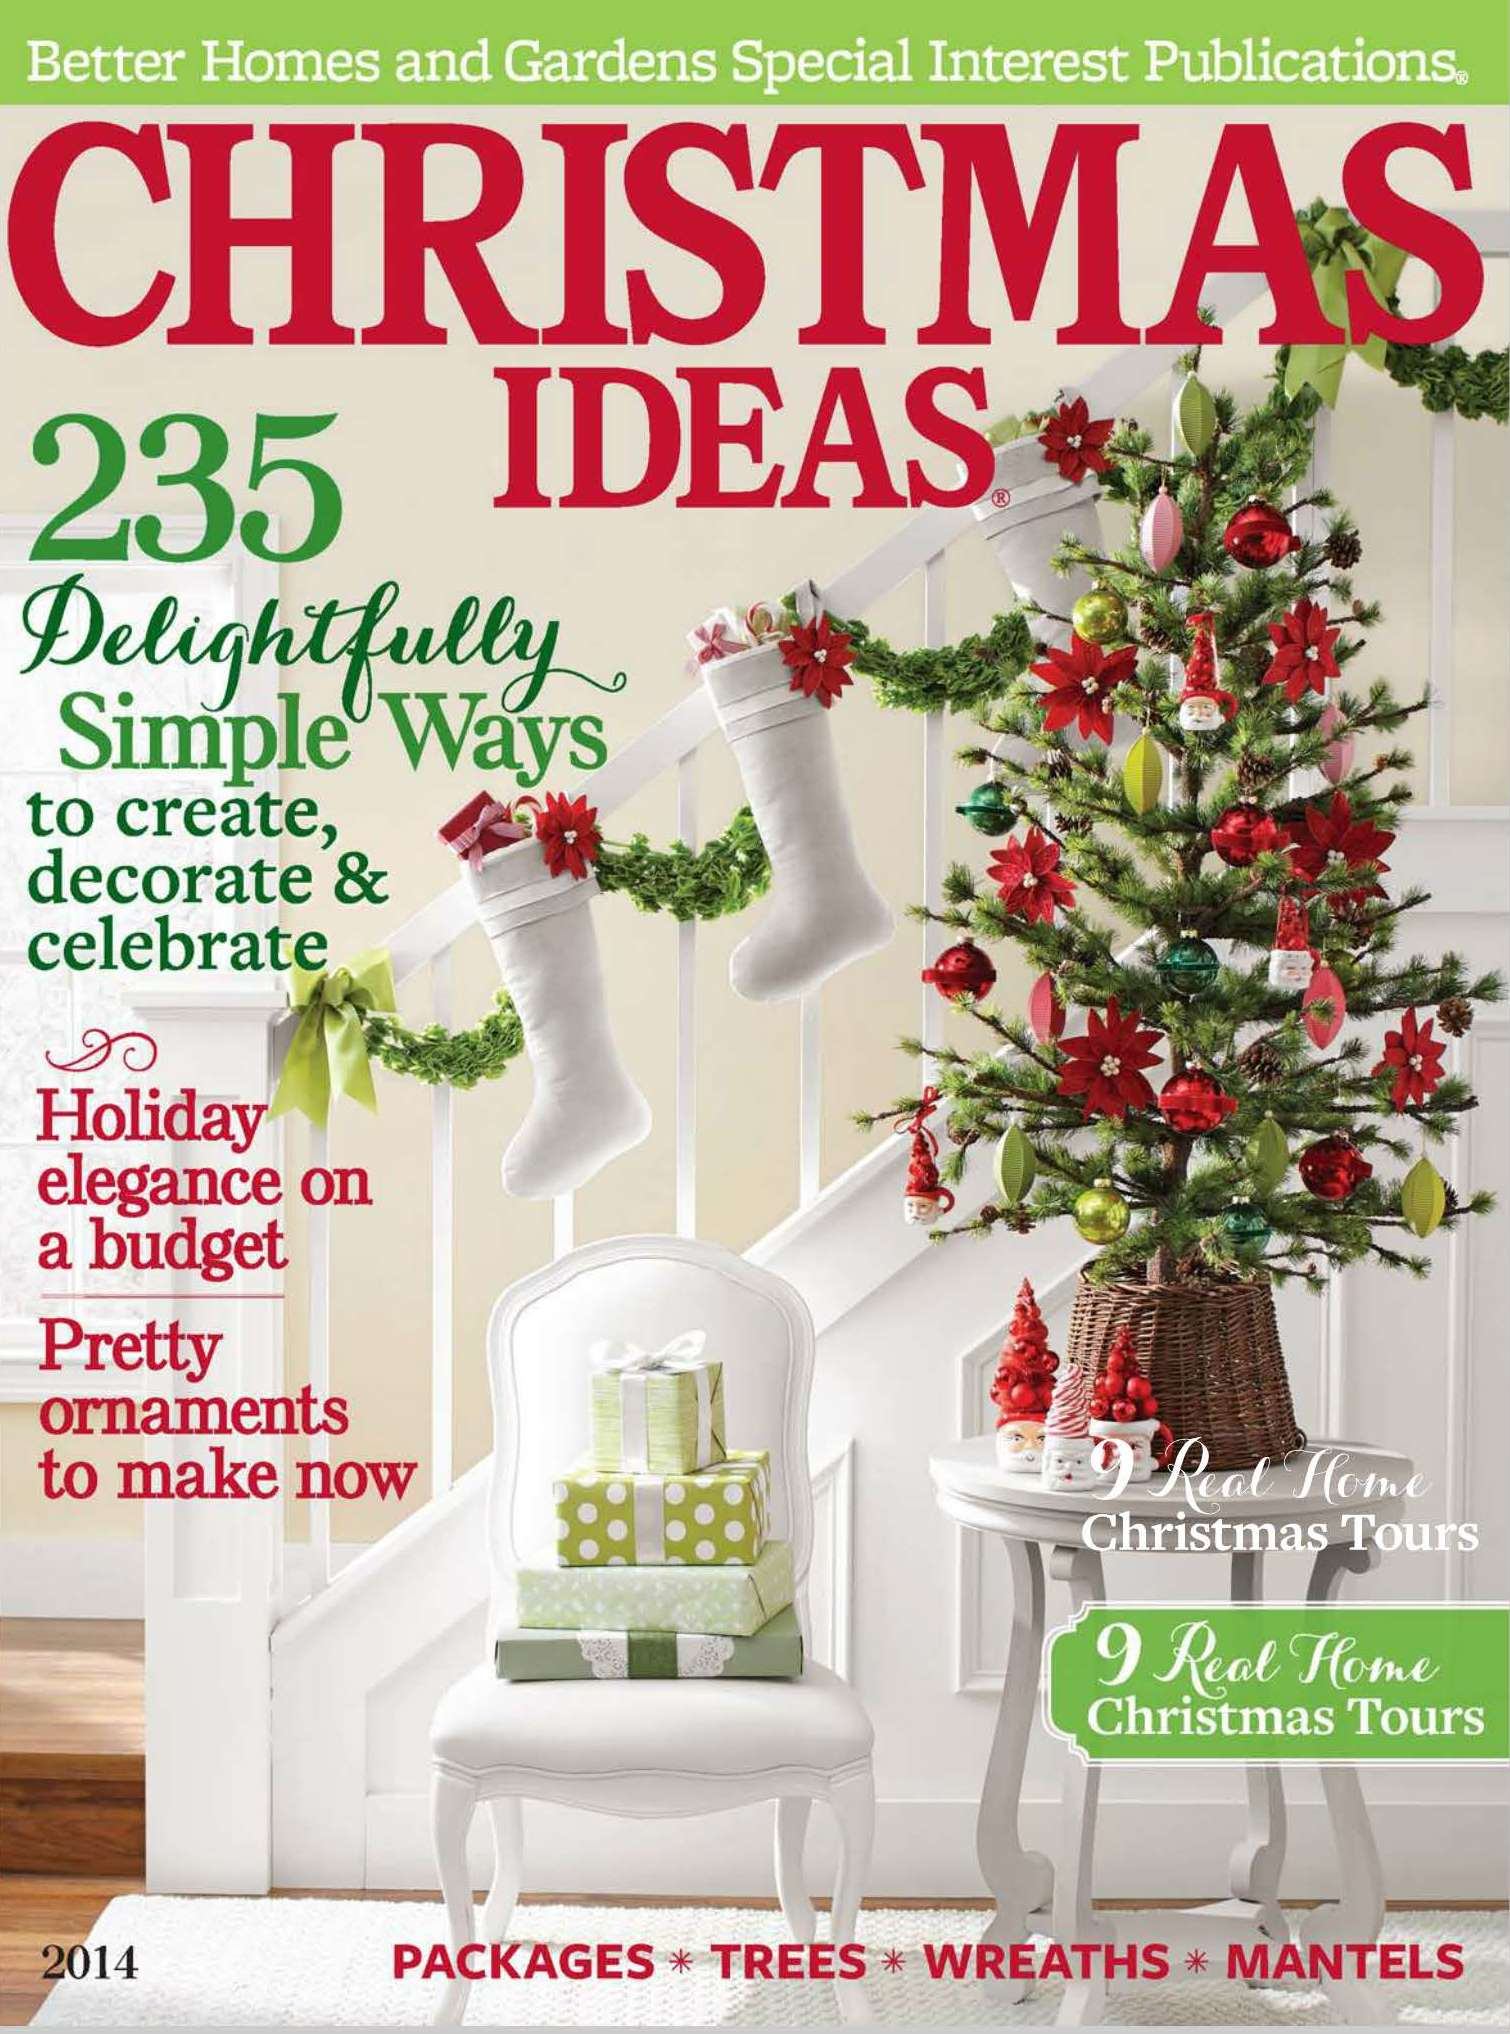 Festive flourishes in better homes and gardens christmas Better homes and gardens garden ideas